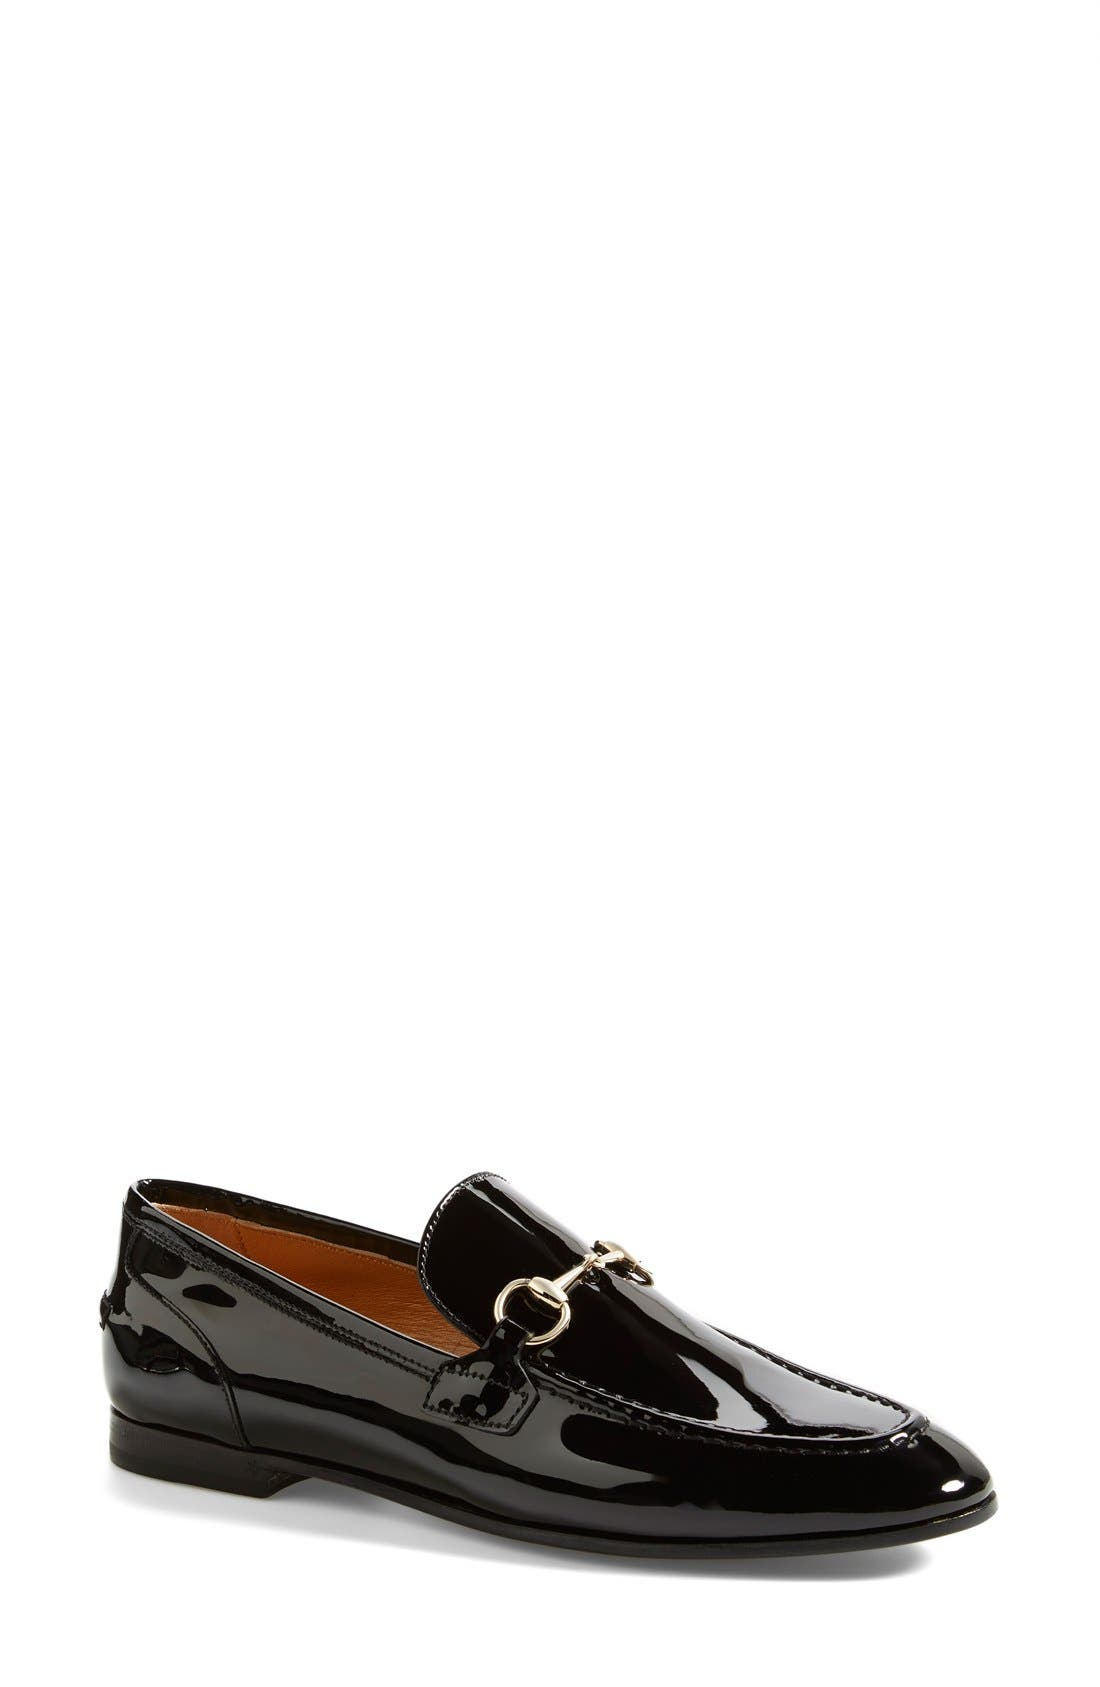 Alternate Image 1 Selected - Gucci 'New Power' Patent Leather Loafer